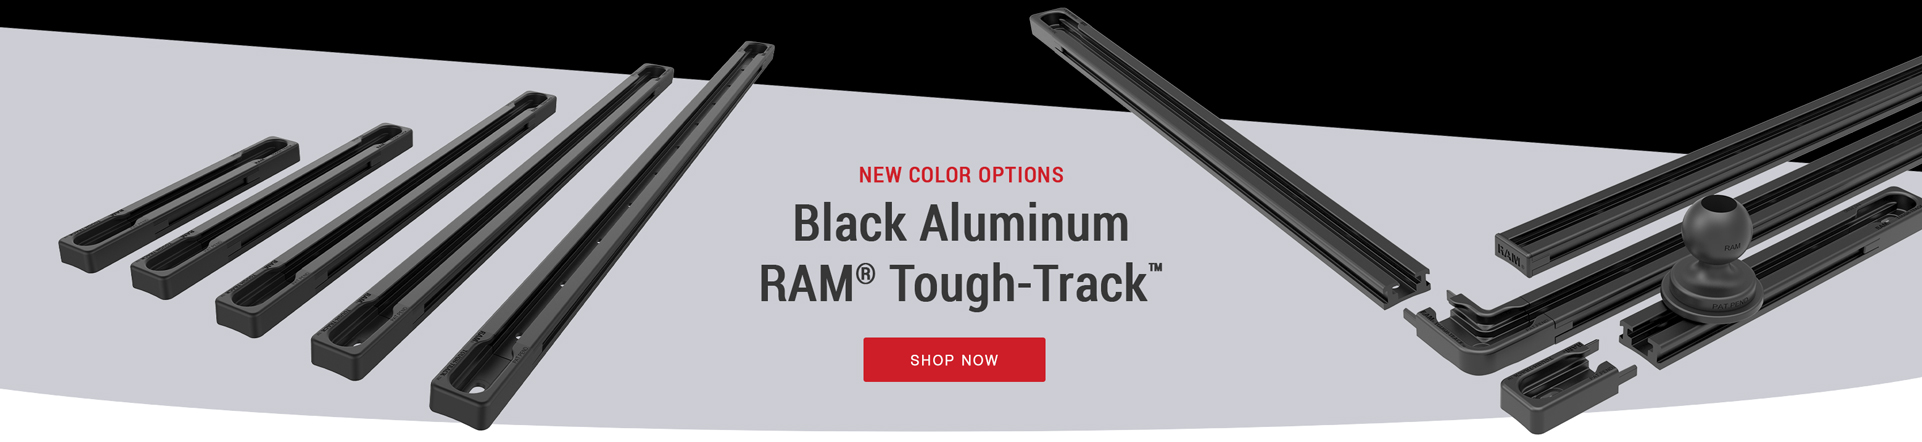 Black Aluminum RAM® Tough-Track™